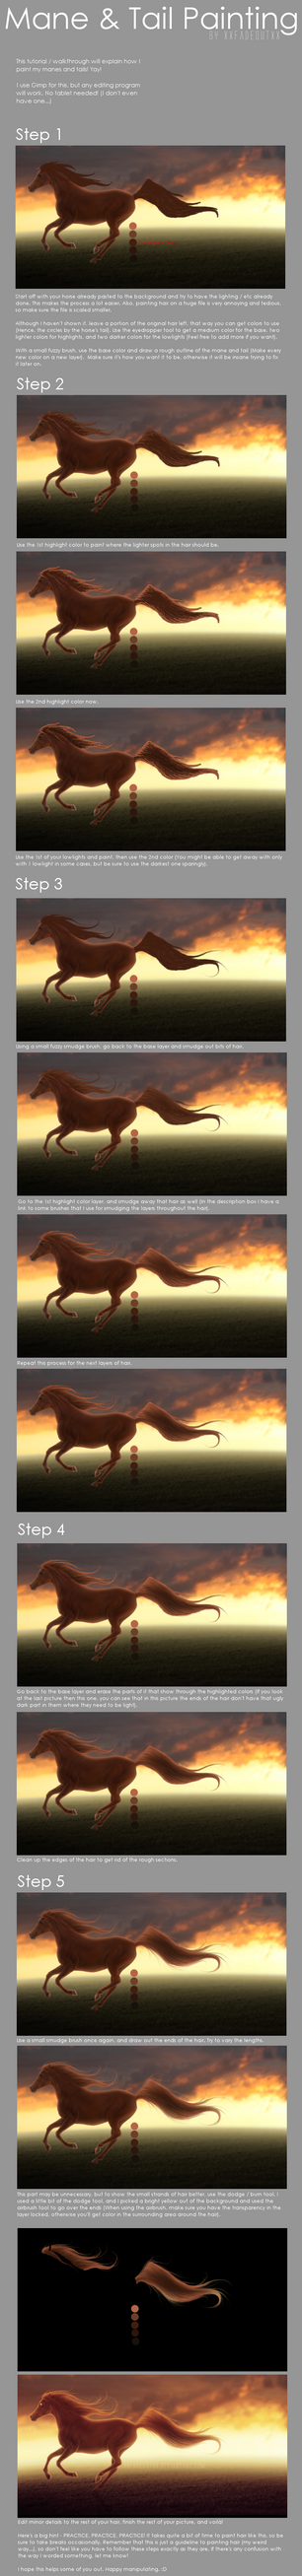 Mane and Tail Painting by xxFadeoutxx